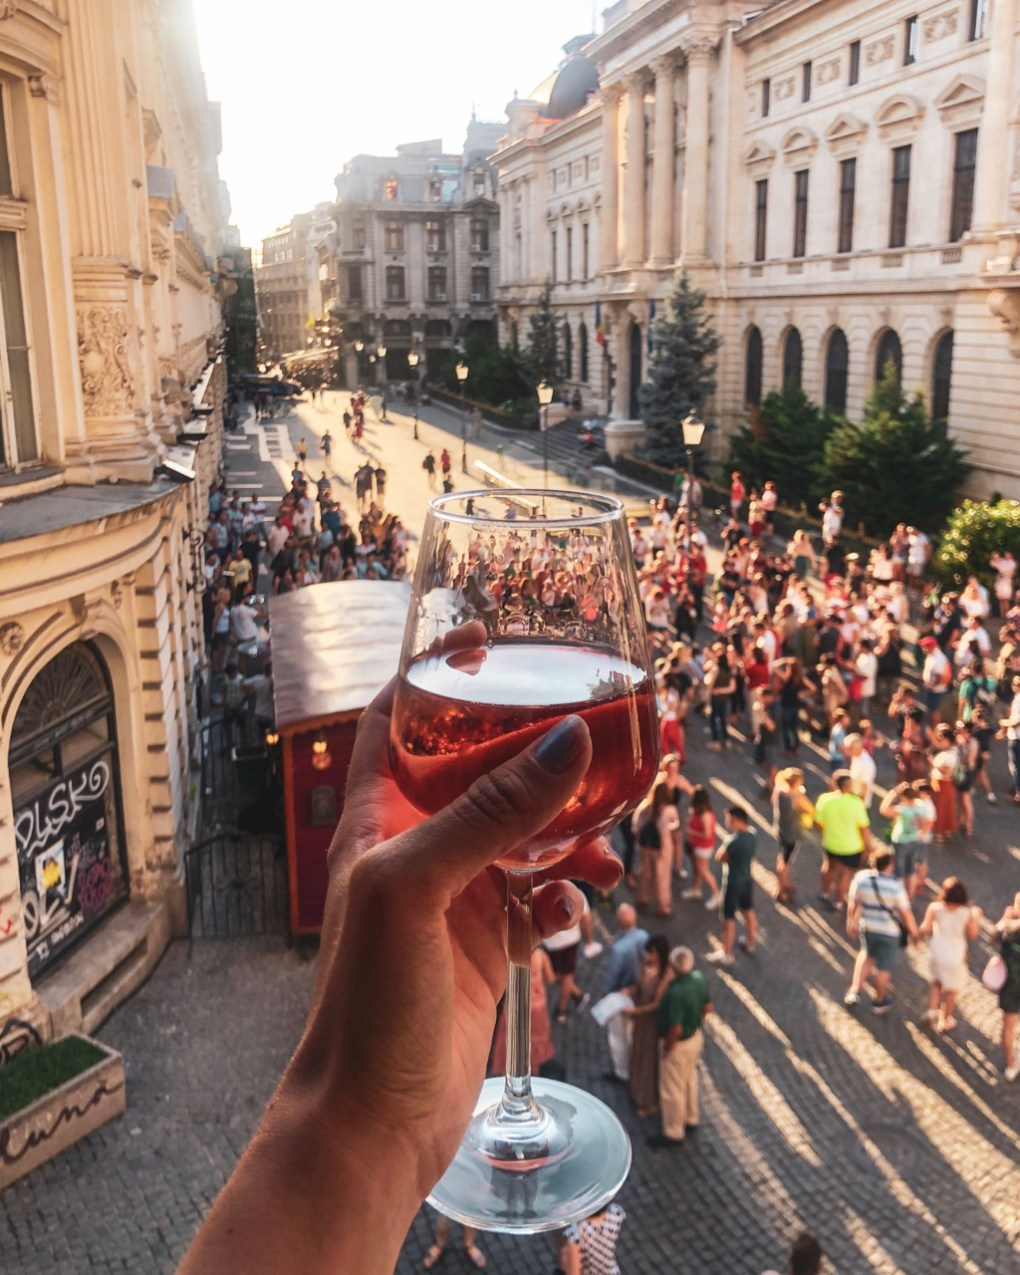 Raising a glass of wine at the view out of the window of Little Bucharest hostel, where a crowd gathers in the street below. 11 must-visit photo spots in Bucharest - spinthewindrose.com